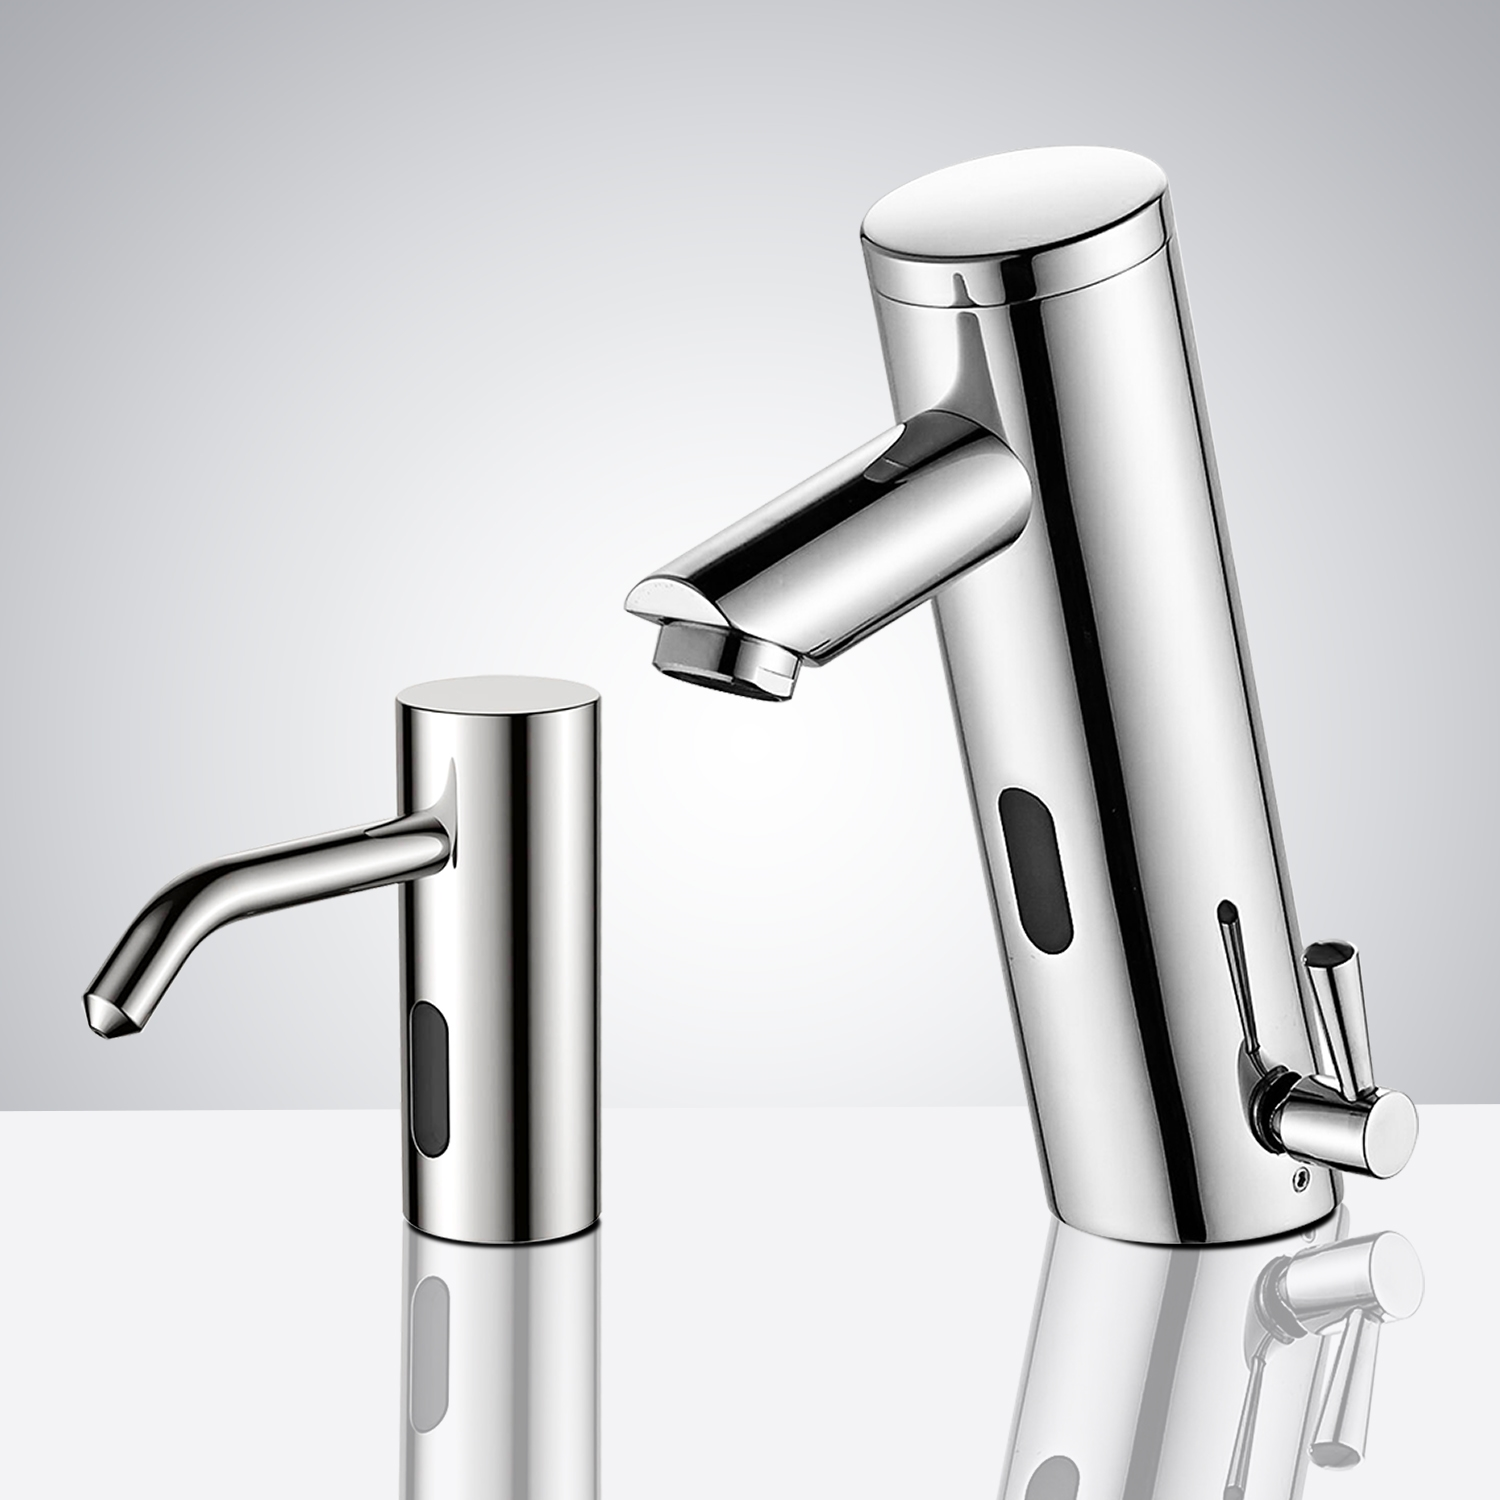 Fontana Geneva Motion Sensor Faucet & Automatic Soap Dispenser for Restrooms